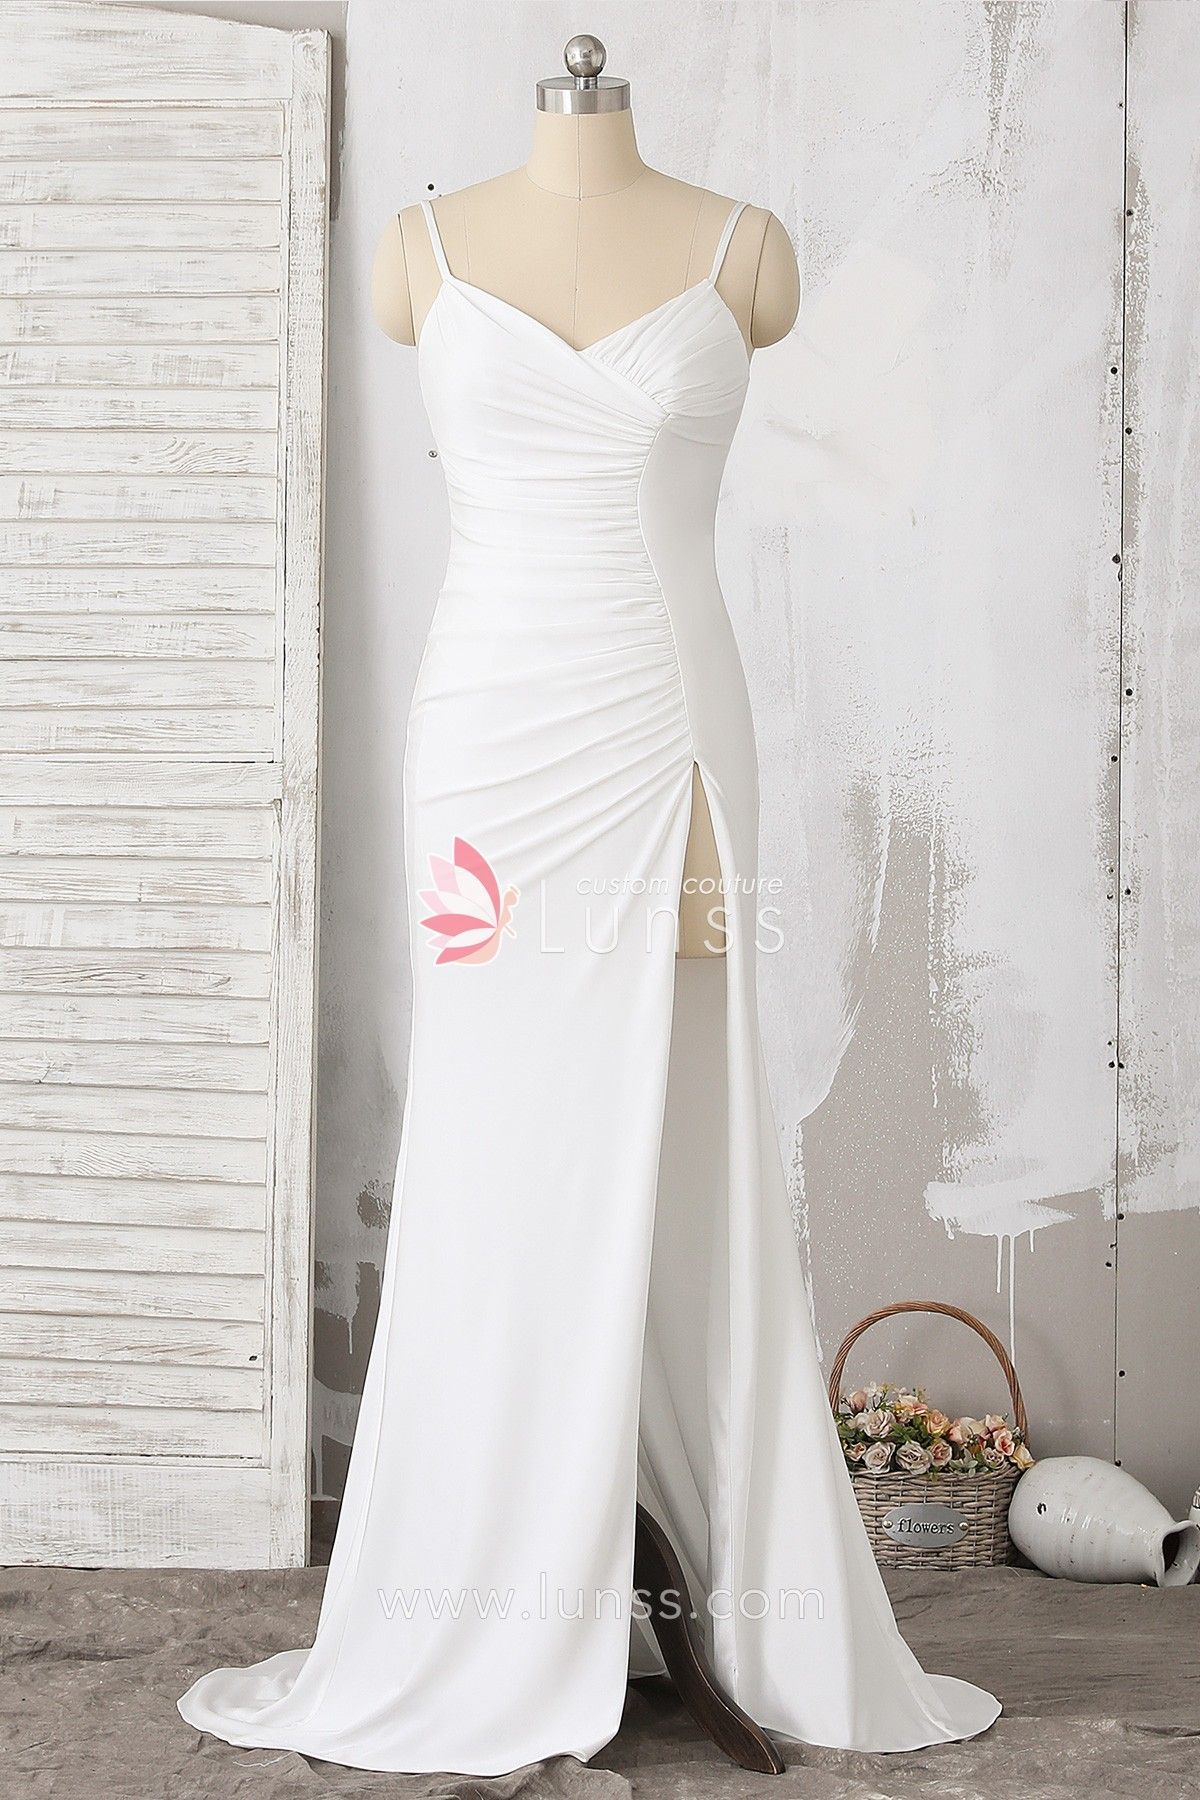 b55a07331bc3d This elegant formal dress features pleated bodice with spaghetti straps and V  neckline, sexy high slit and petty train. It is a wonderful evening gown  for ...